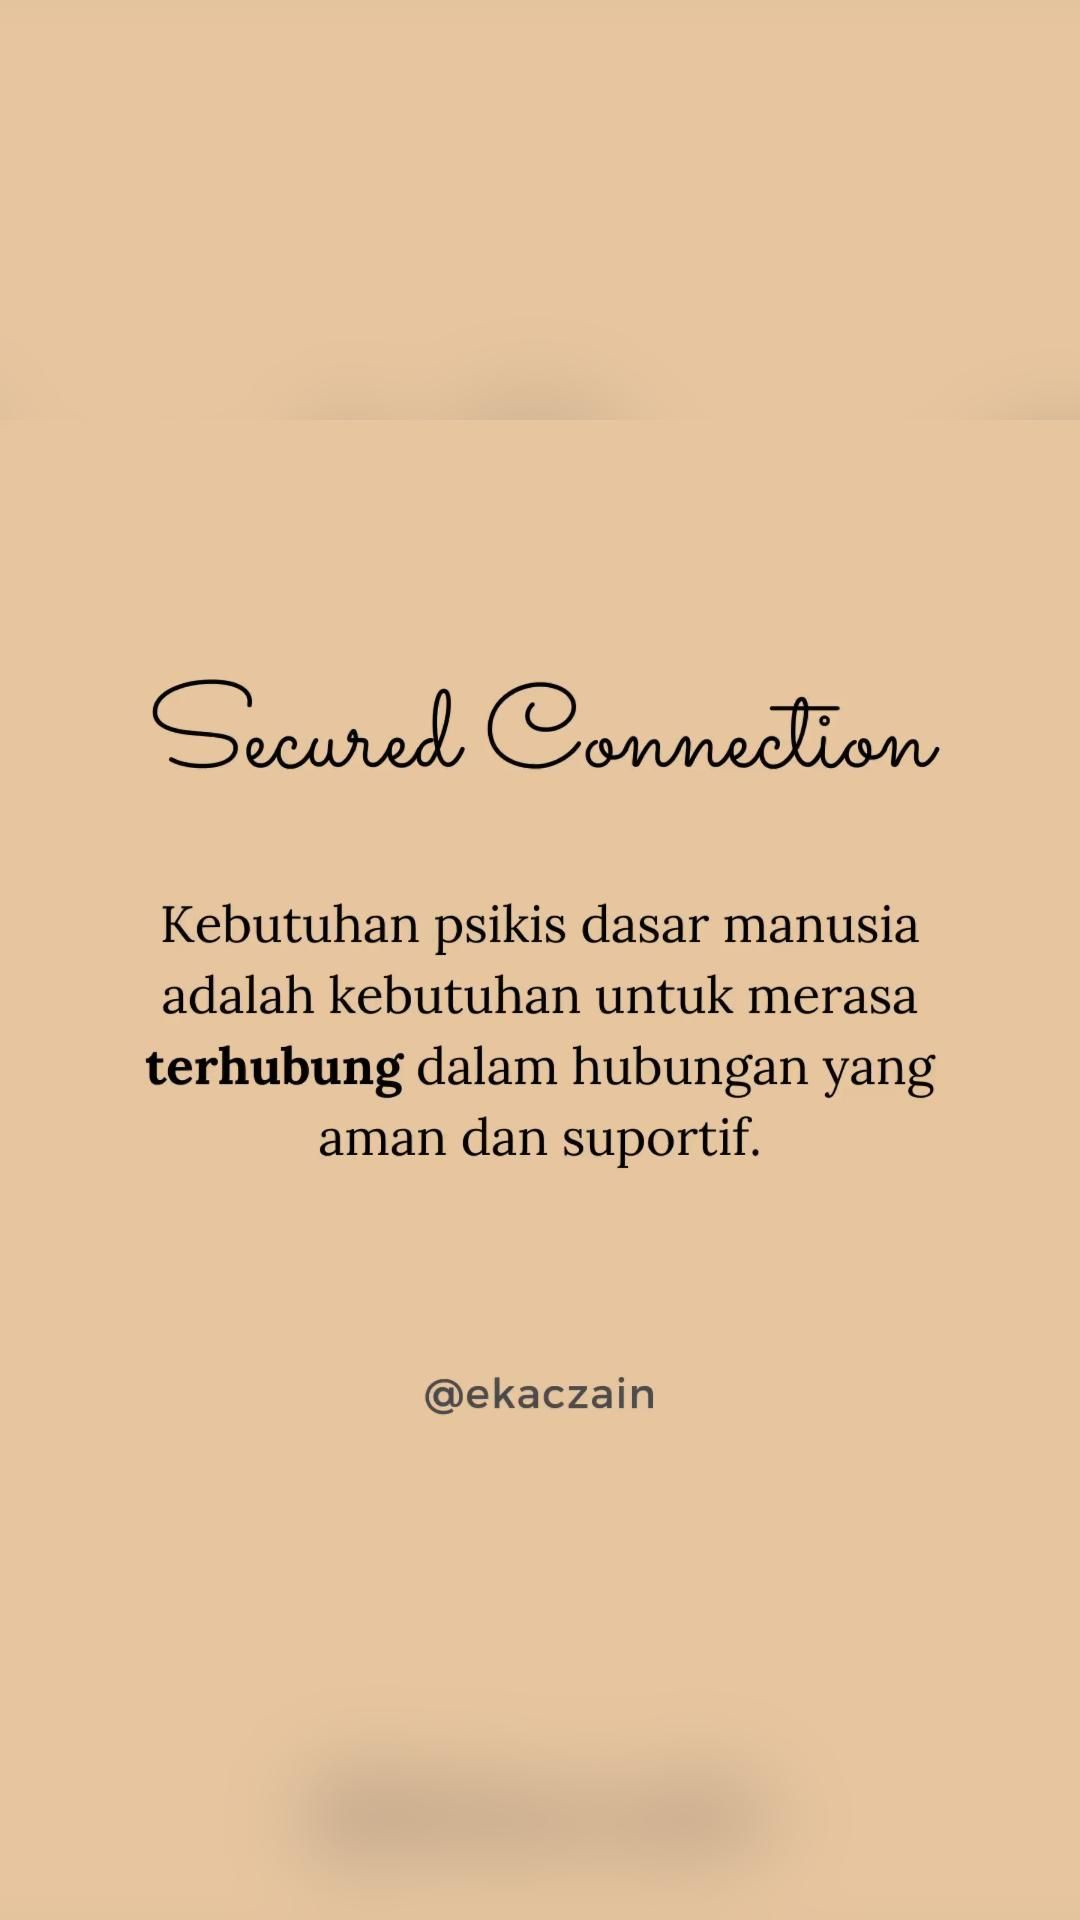 Secured Connection